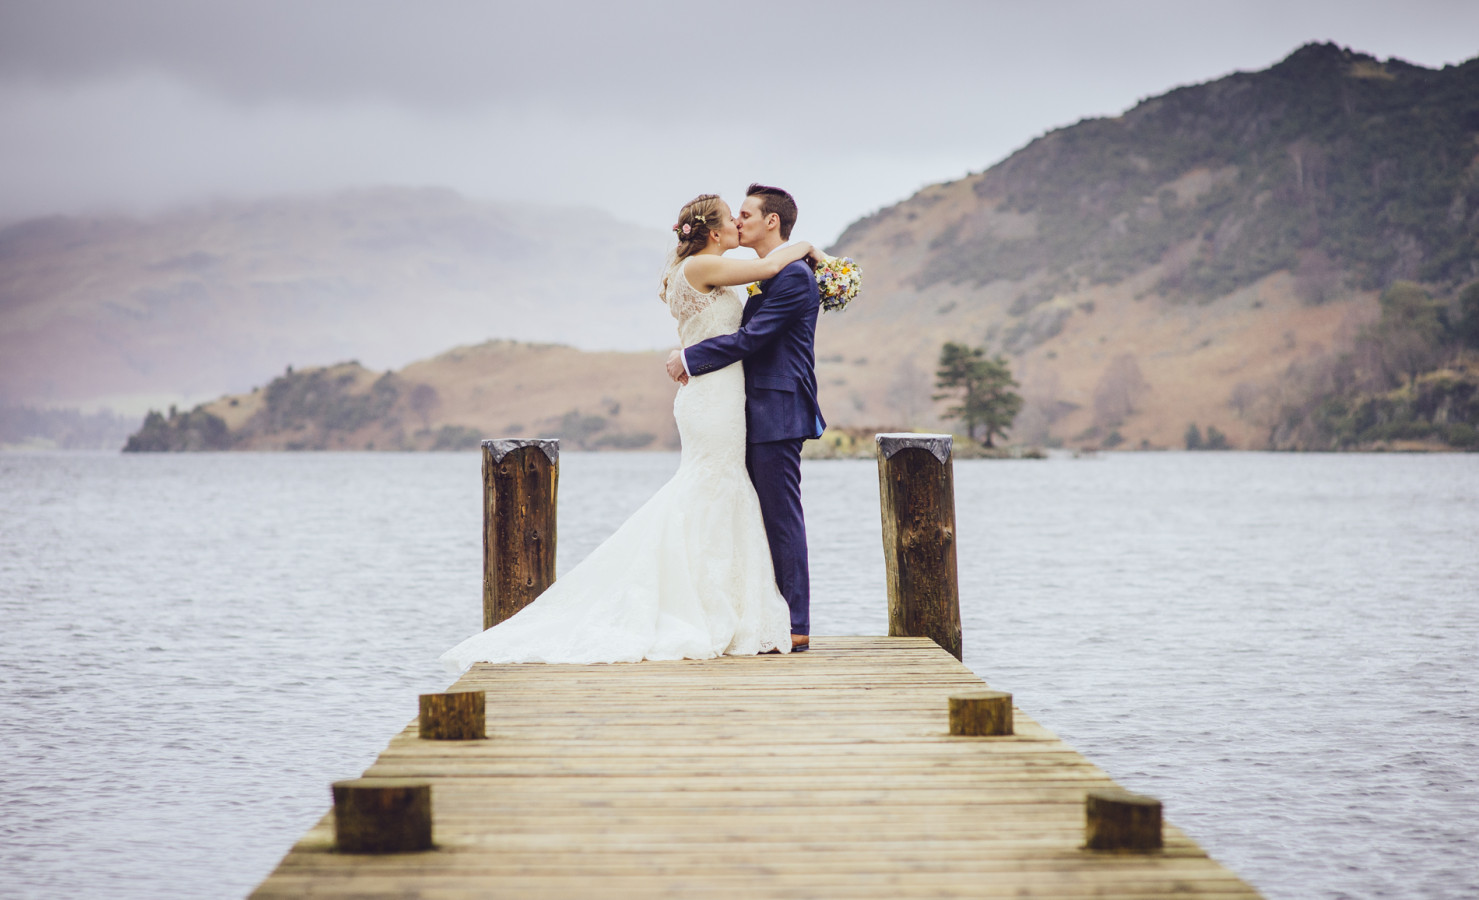 Bride and groom embrace next to the lake, classic and timeless photography by luke